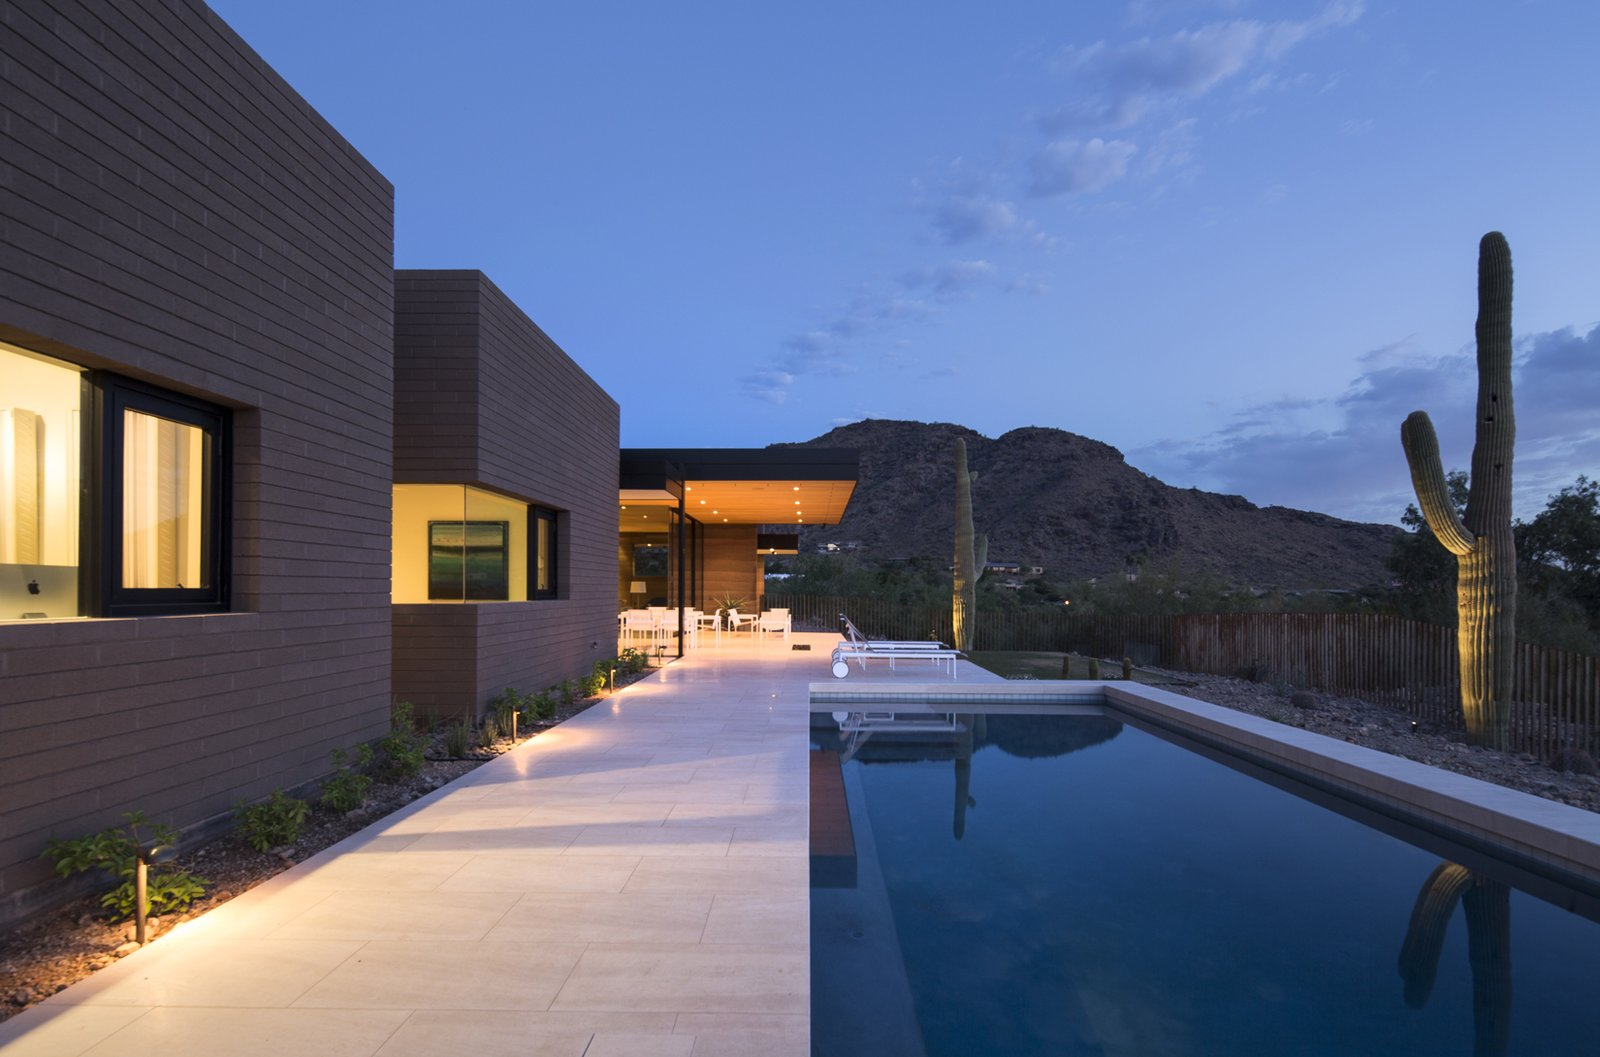 Outdoor, Back Yard, Trees, Concrete Pools, Tubs, Shower, Small Pools, Tubs, Shower, Grass, Hardscapes, Shrubs, Large Patio, Porch, Deck, Vertical Fences, Wall, Metal Fences, Wall, Landscape Lighting, and Stone Patio, Porch, Deck  Rammed Earth Modern